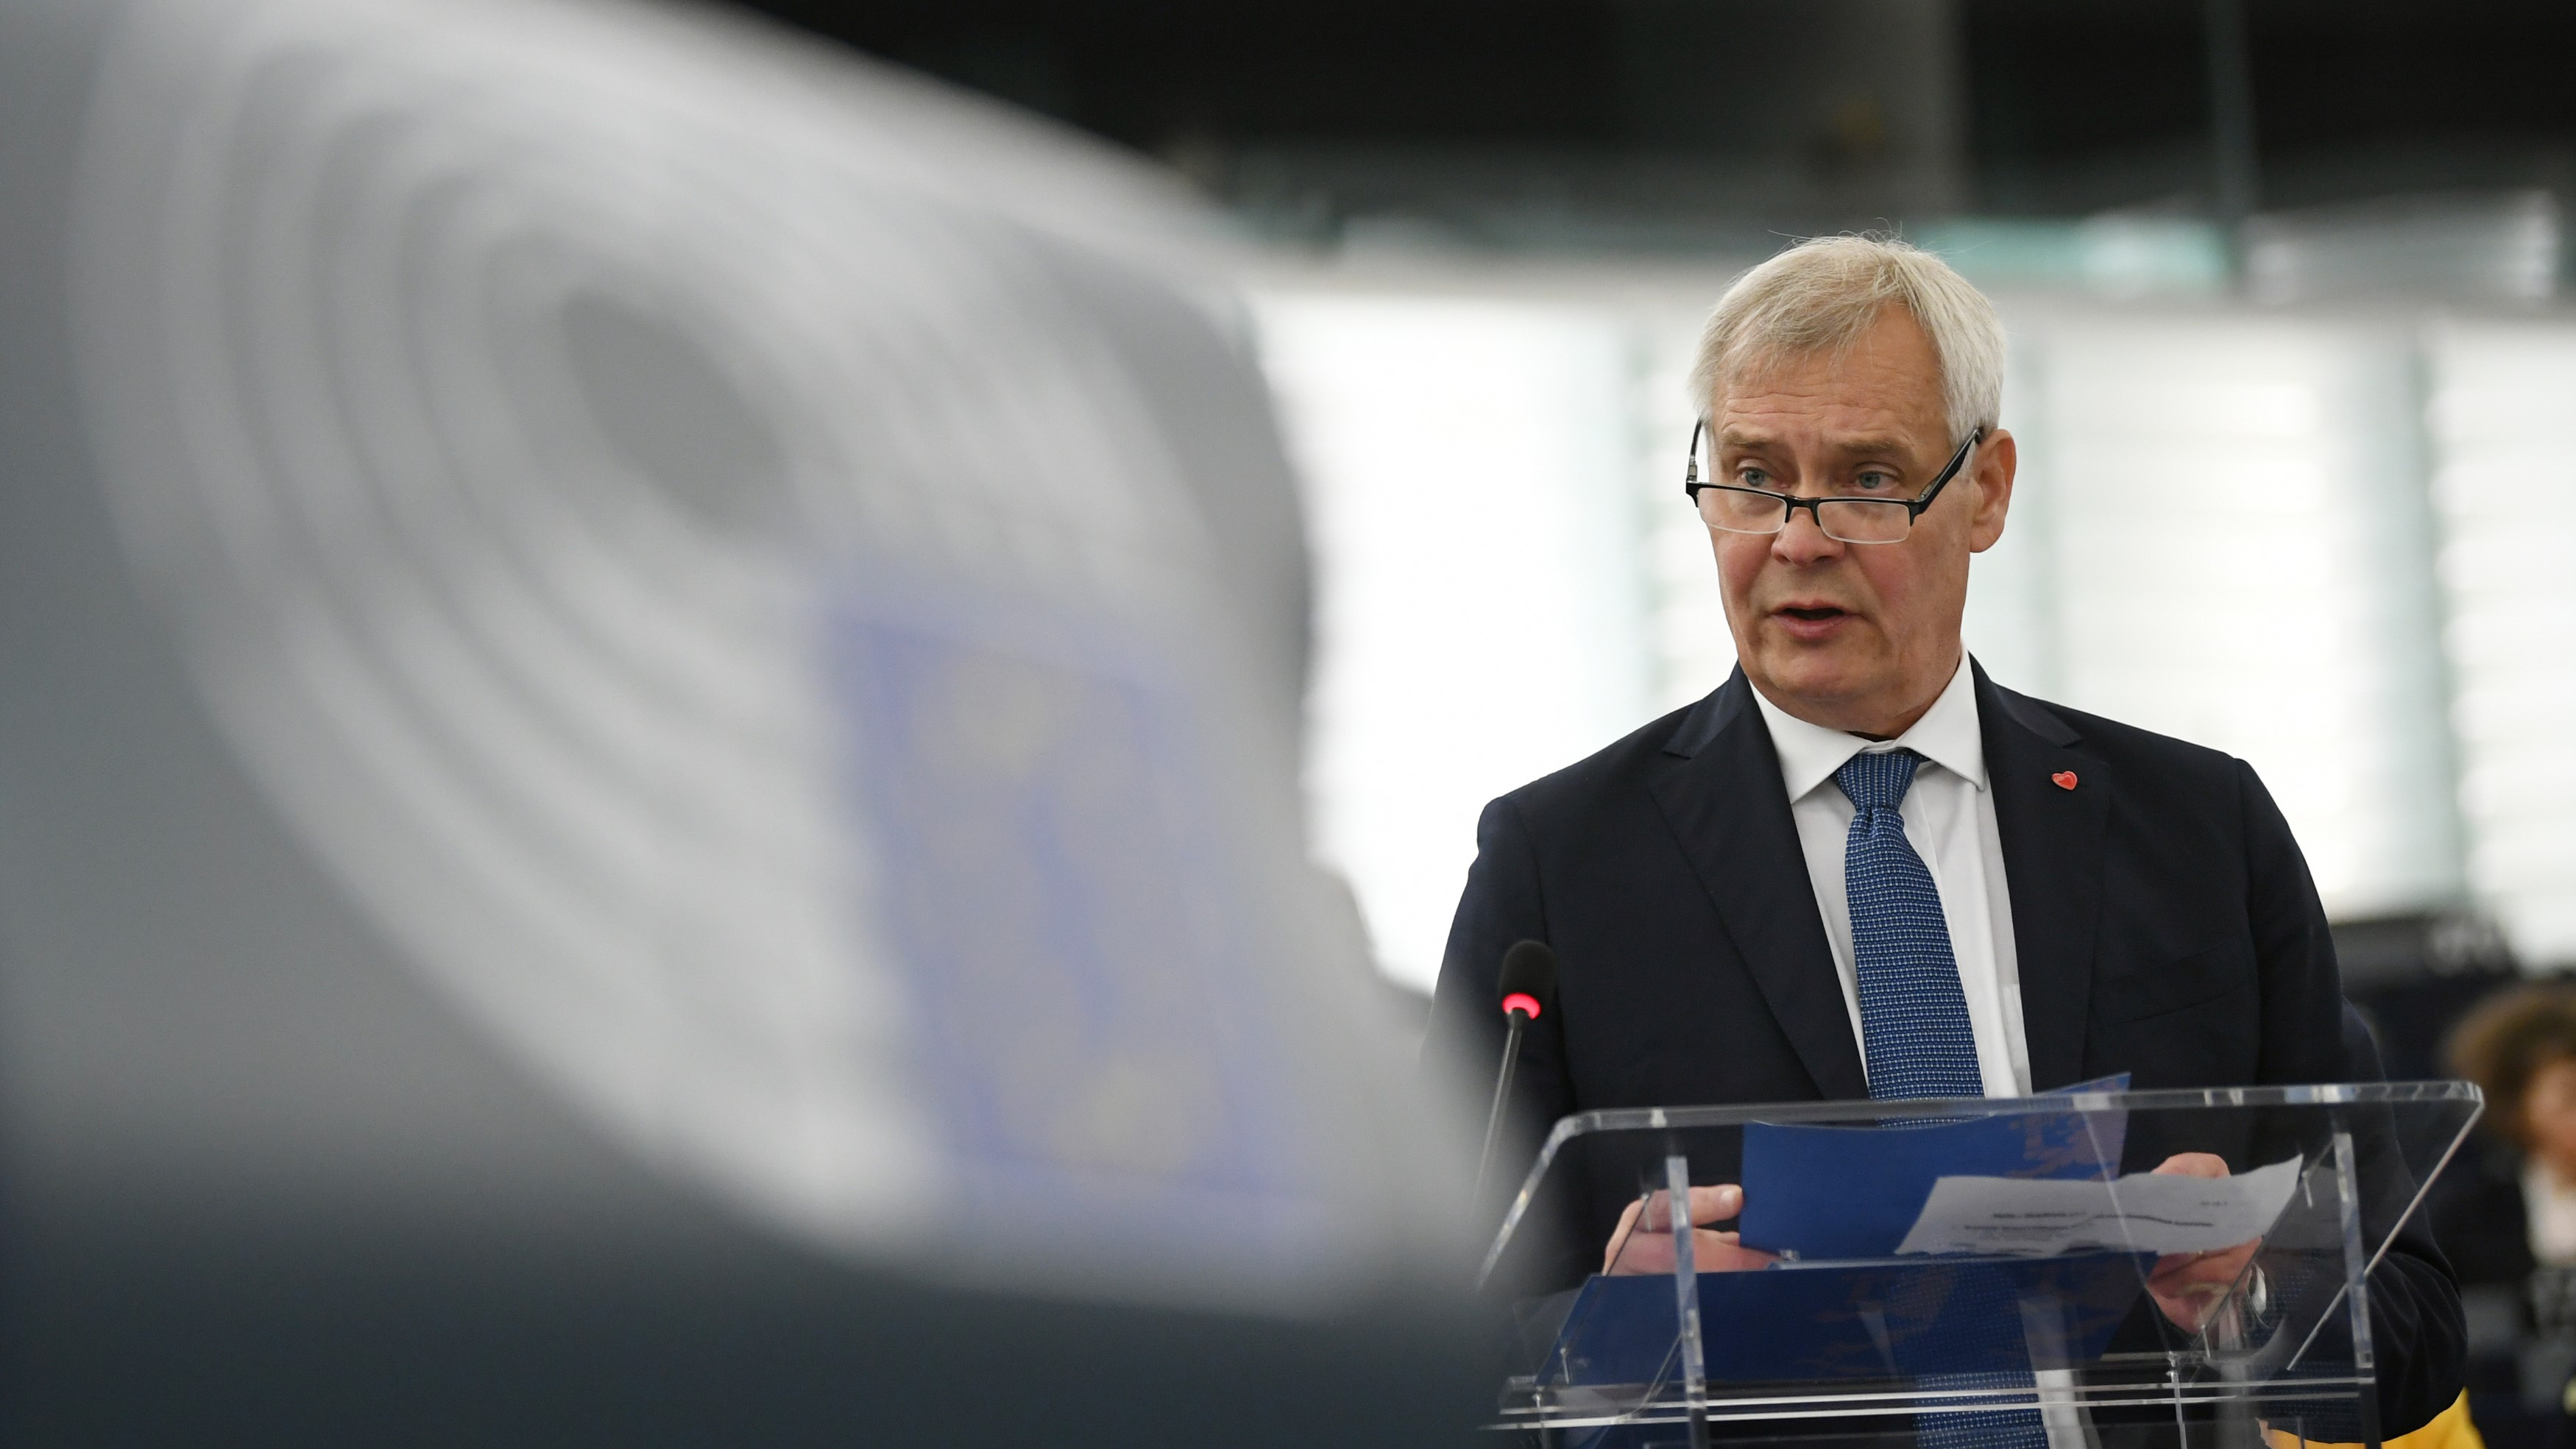 Finnish Prime Minister Antti Rinne delivers his speech about the the priorities of the incoming Finnish presidency at the European Parliament. (EPA-EFE/PATRICK SEEGER)